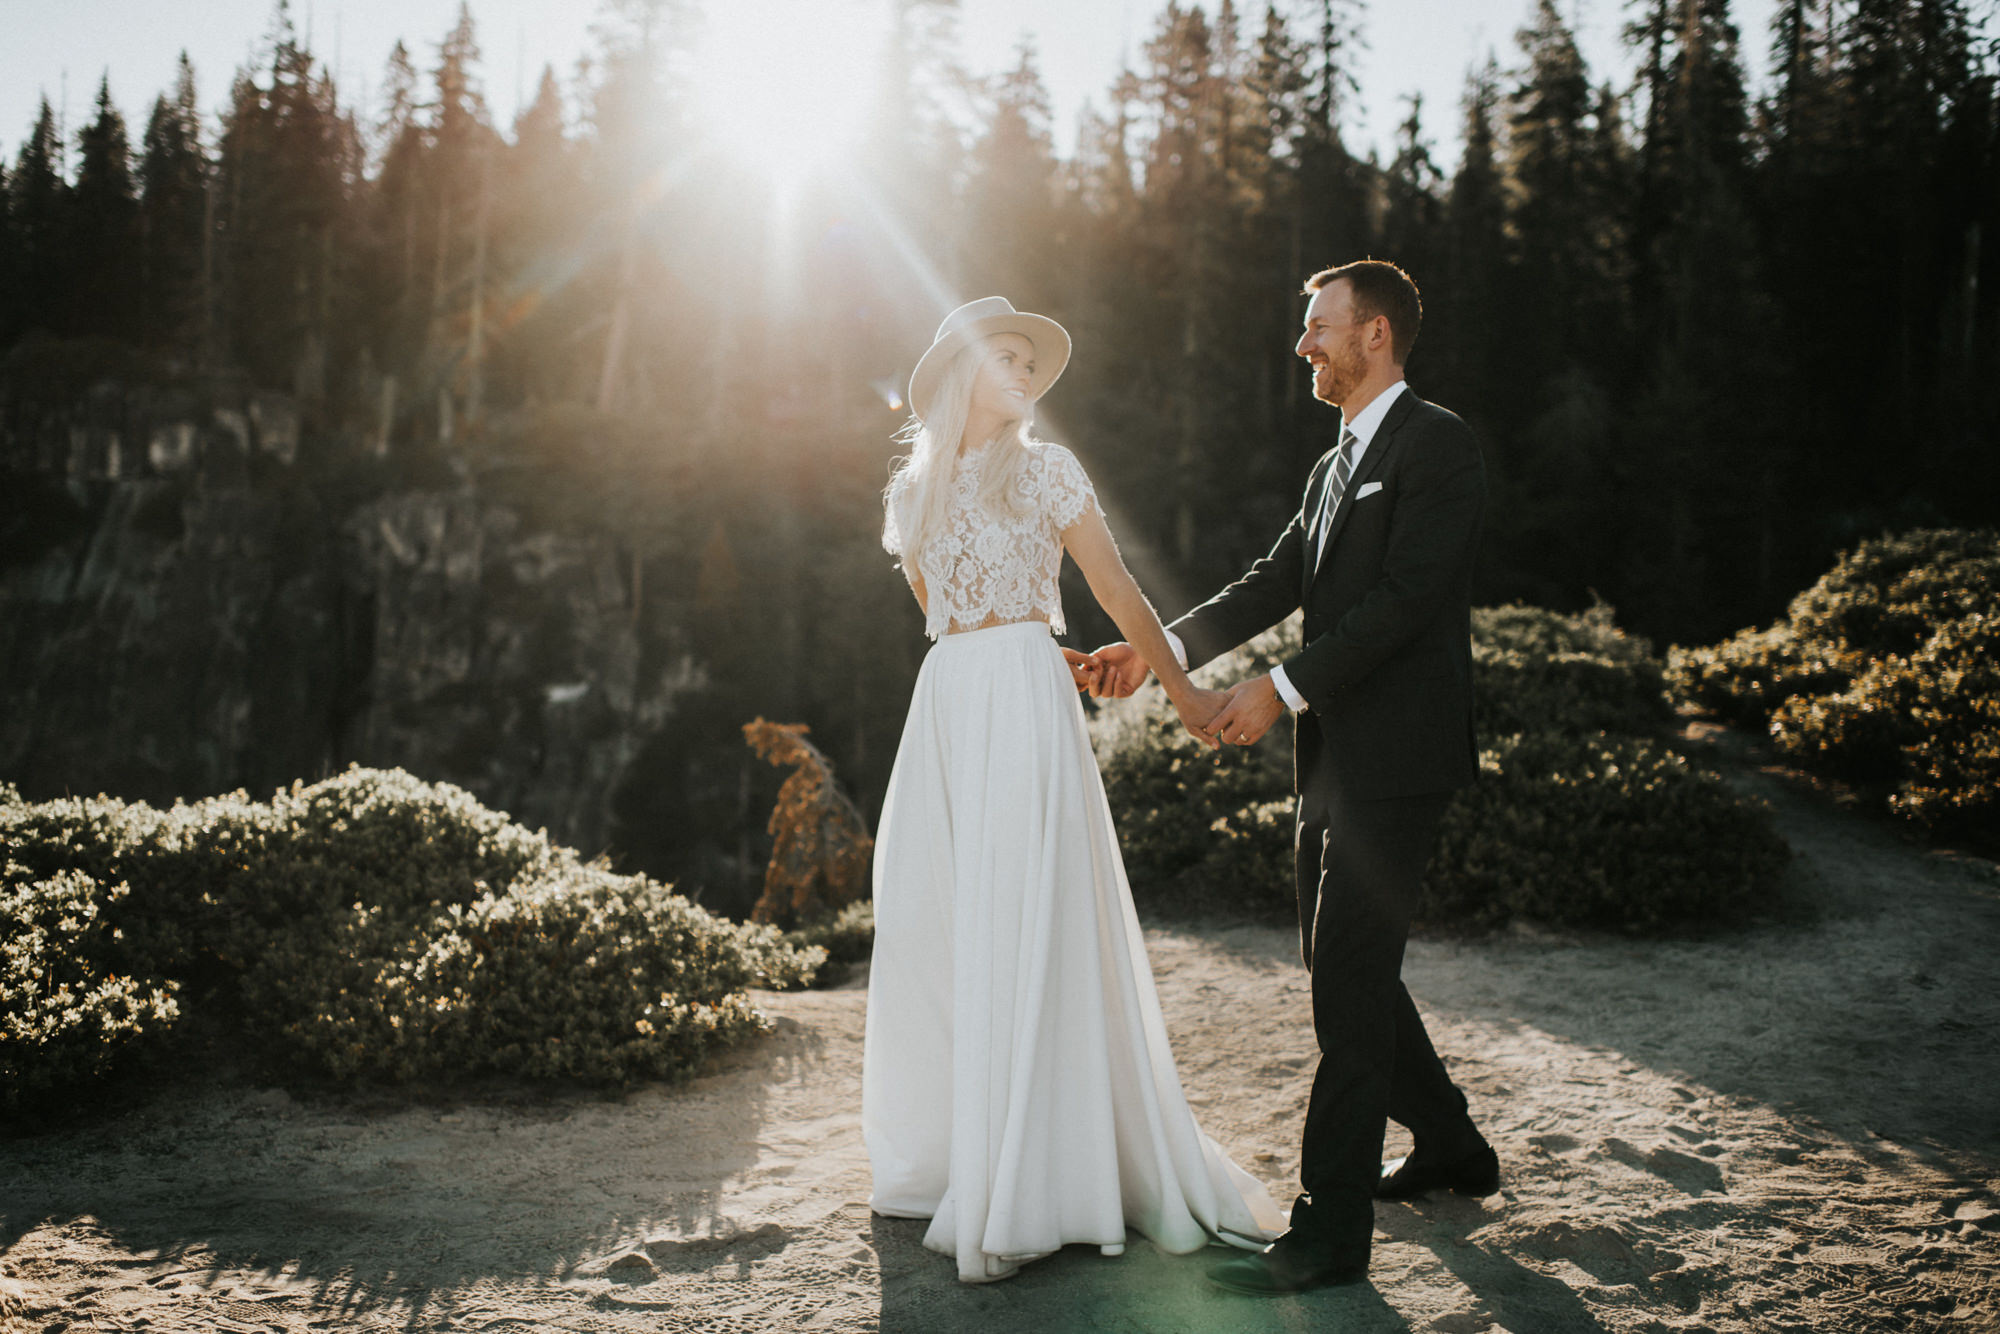 Sunlit couple bride with short applique top and long skirt - photo by Nick + Danee